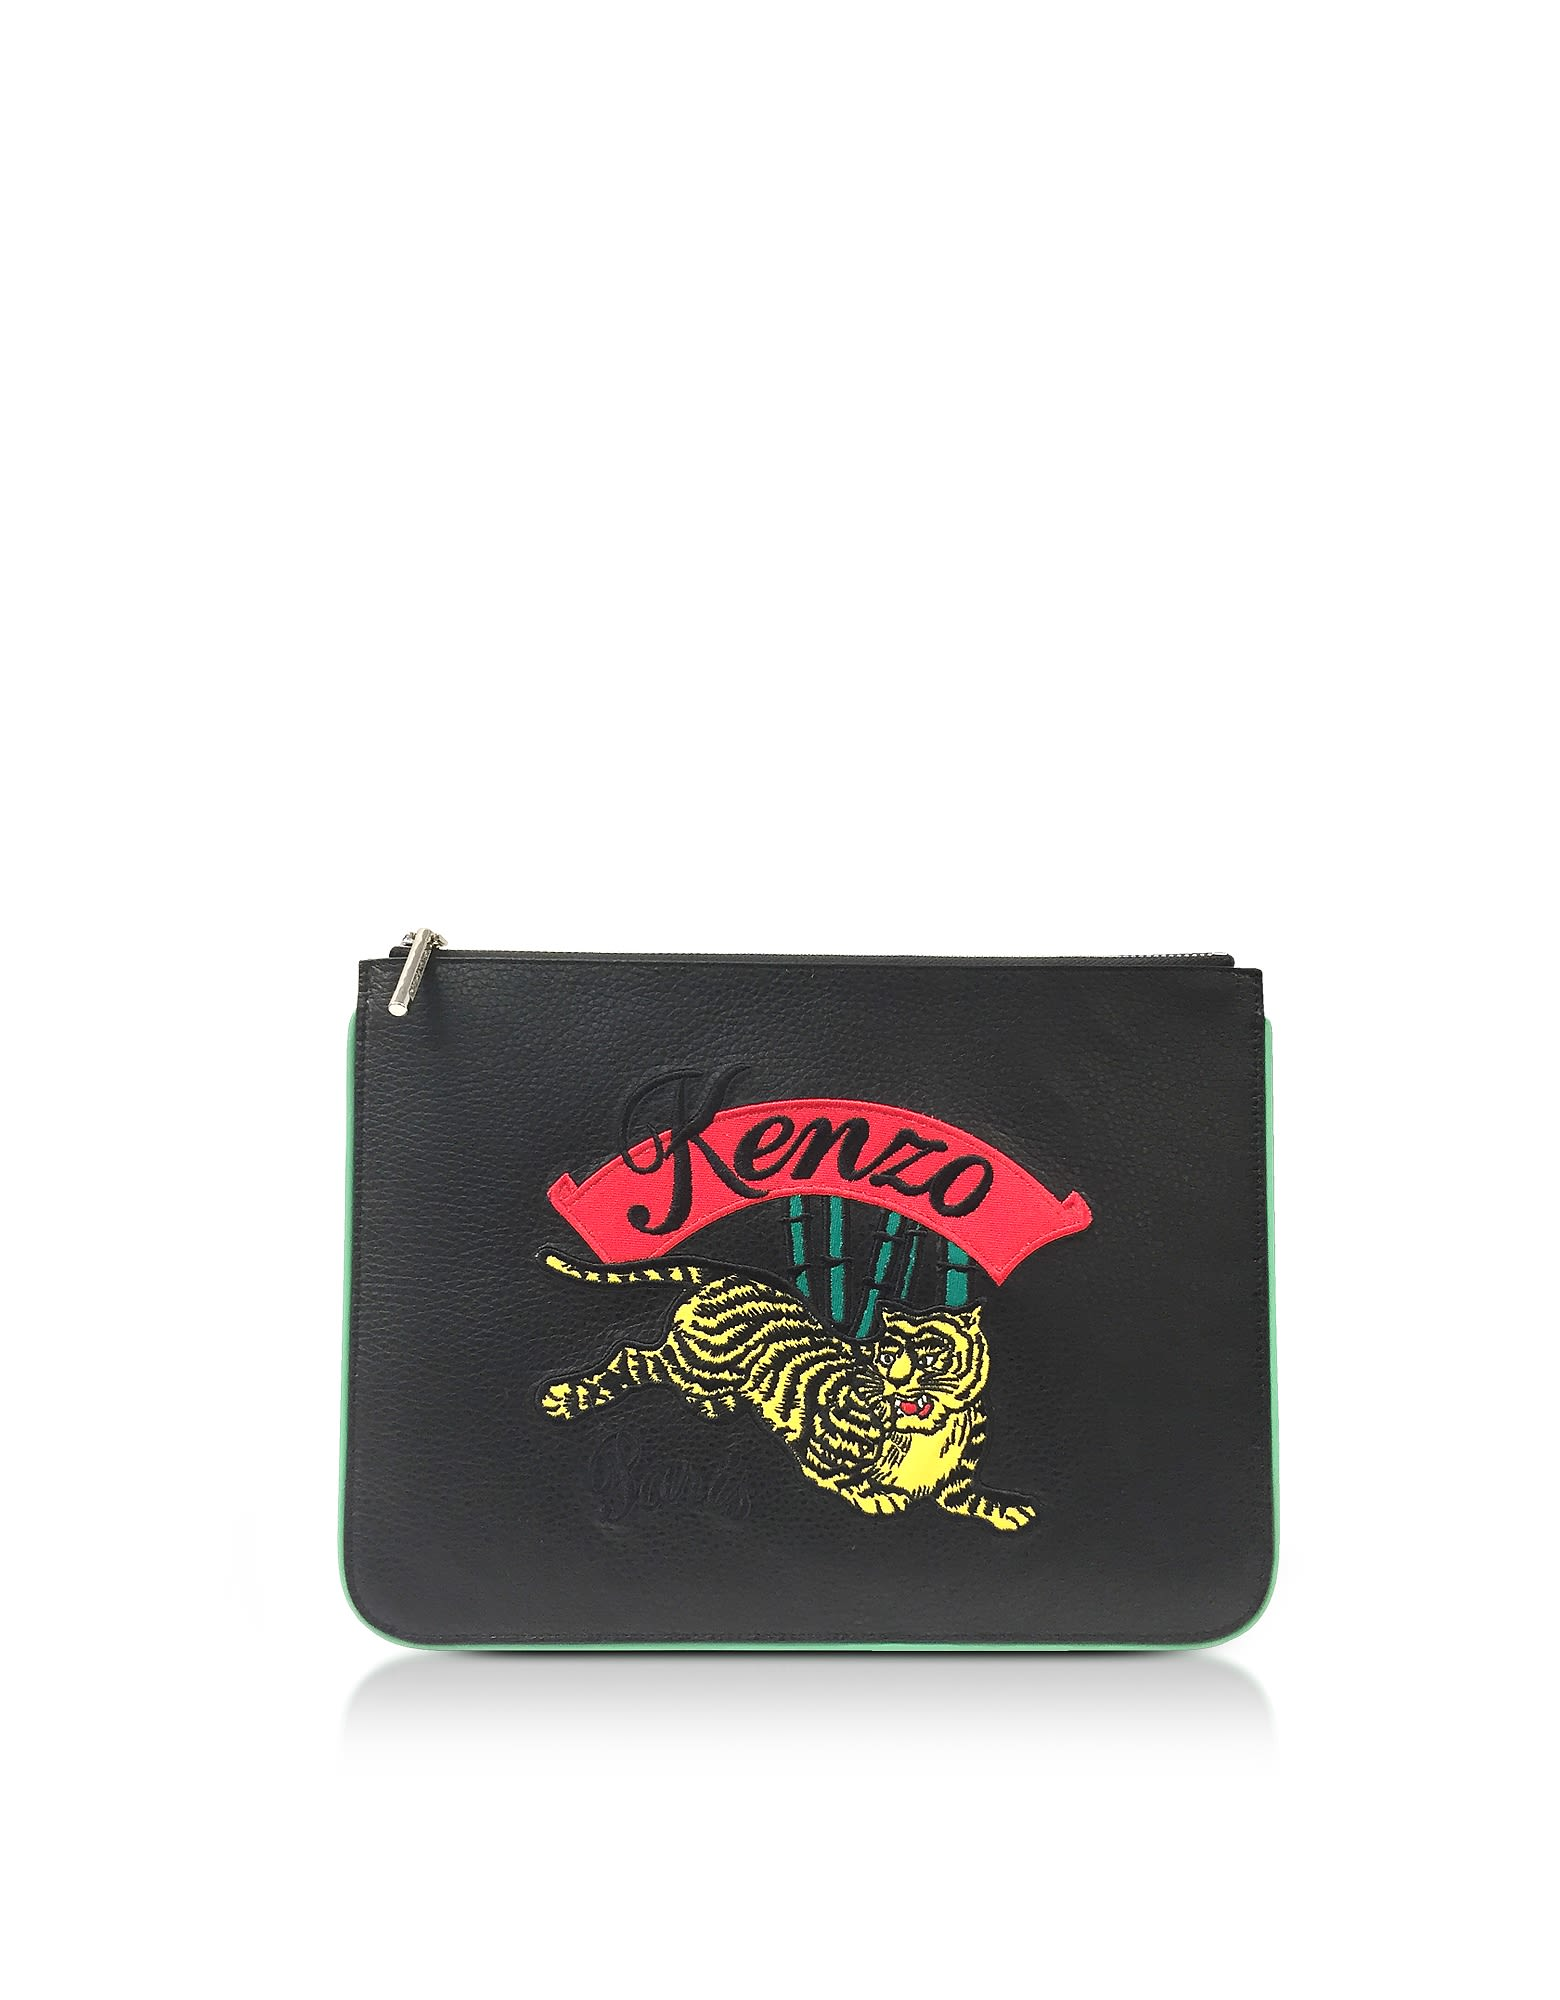 Leaping Tiger Leather A4 Pouch - Black